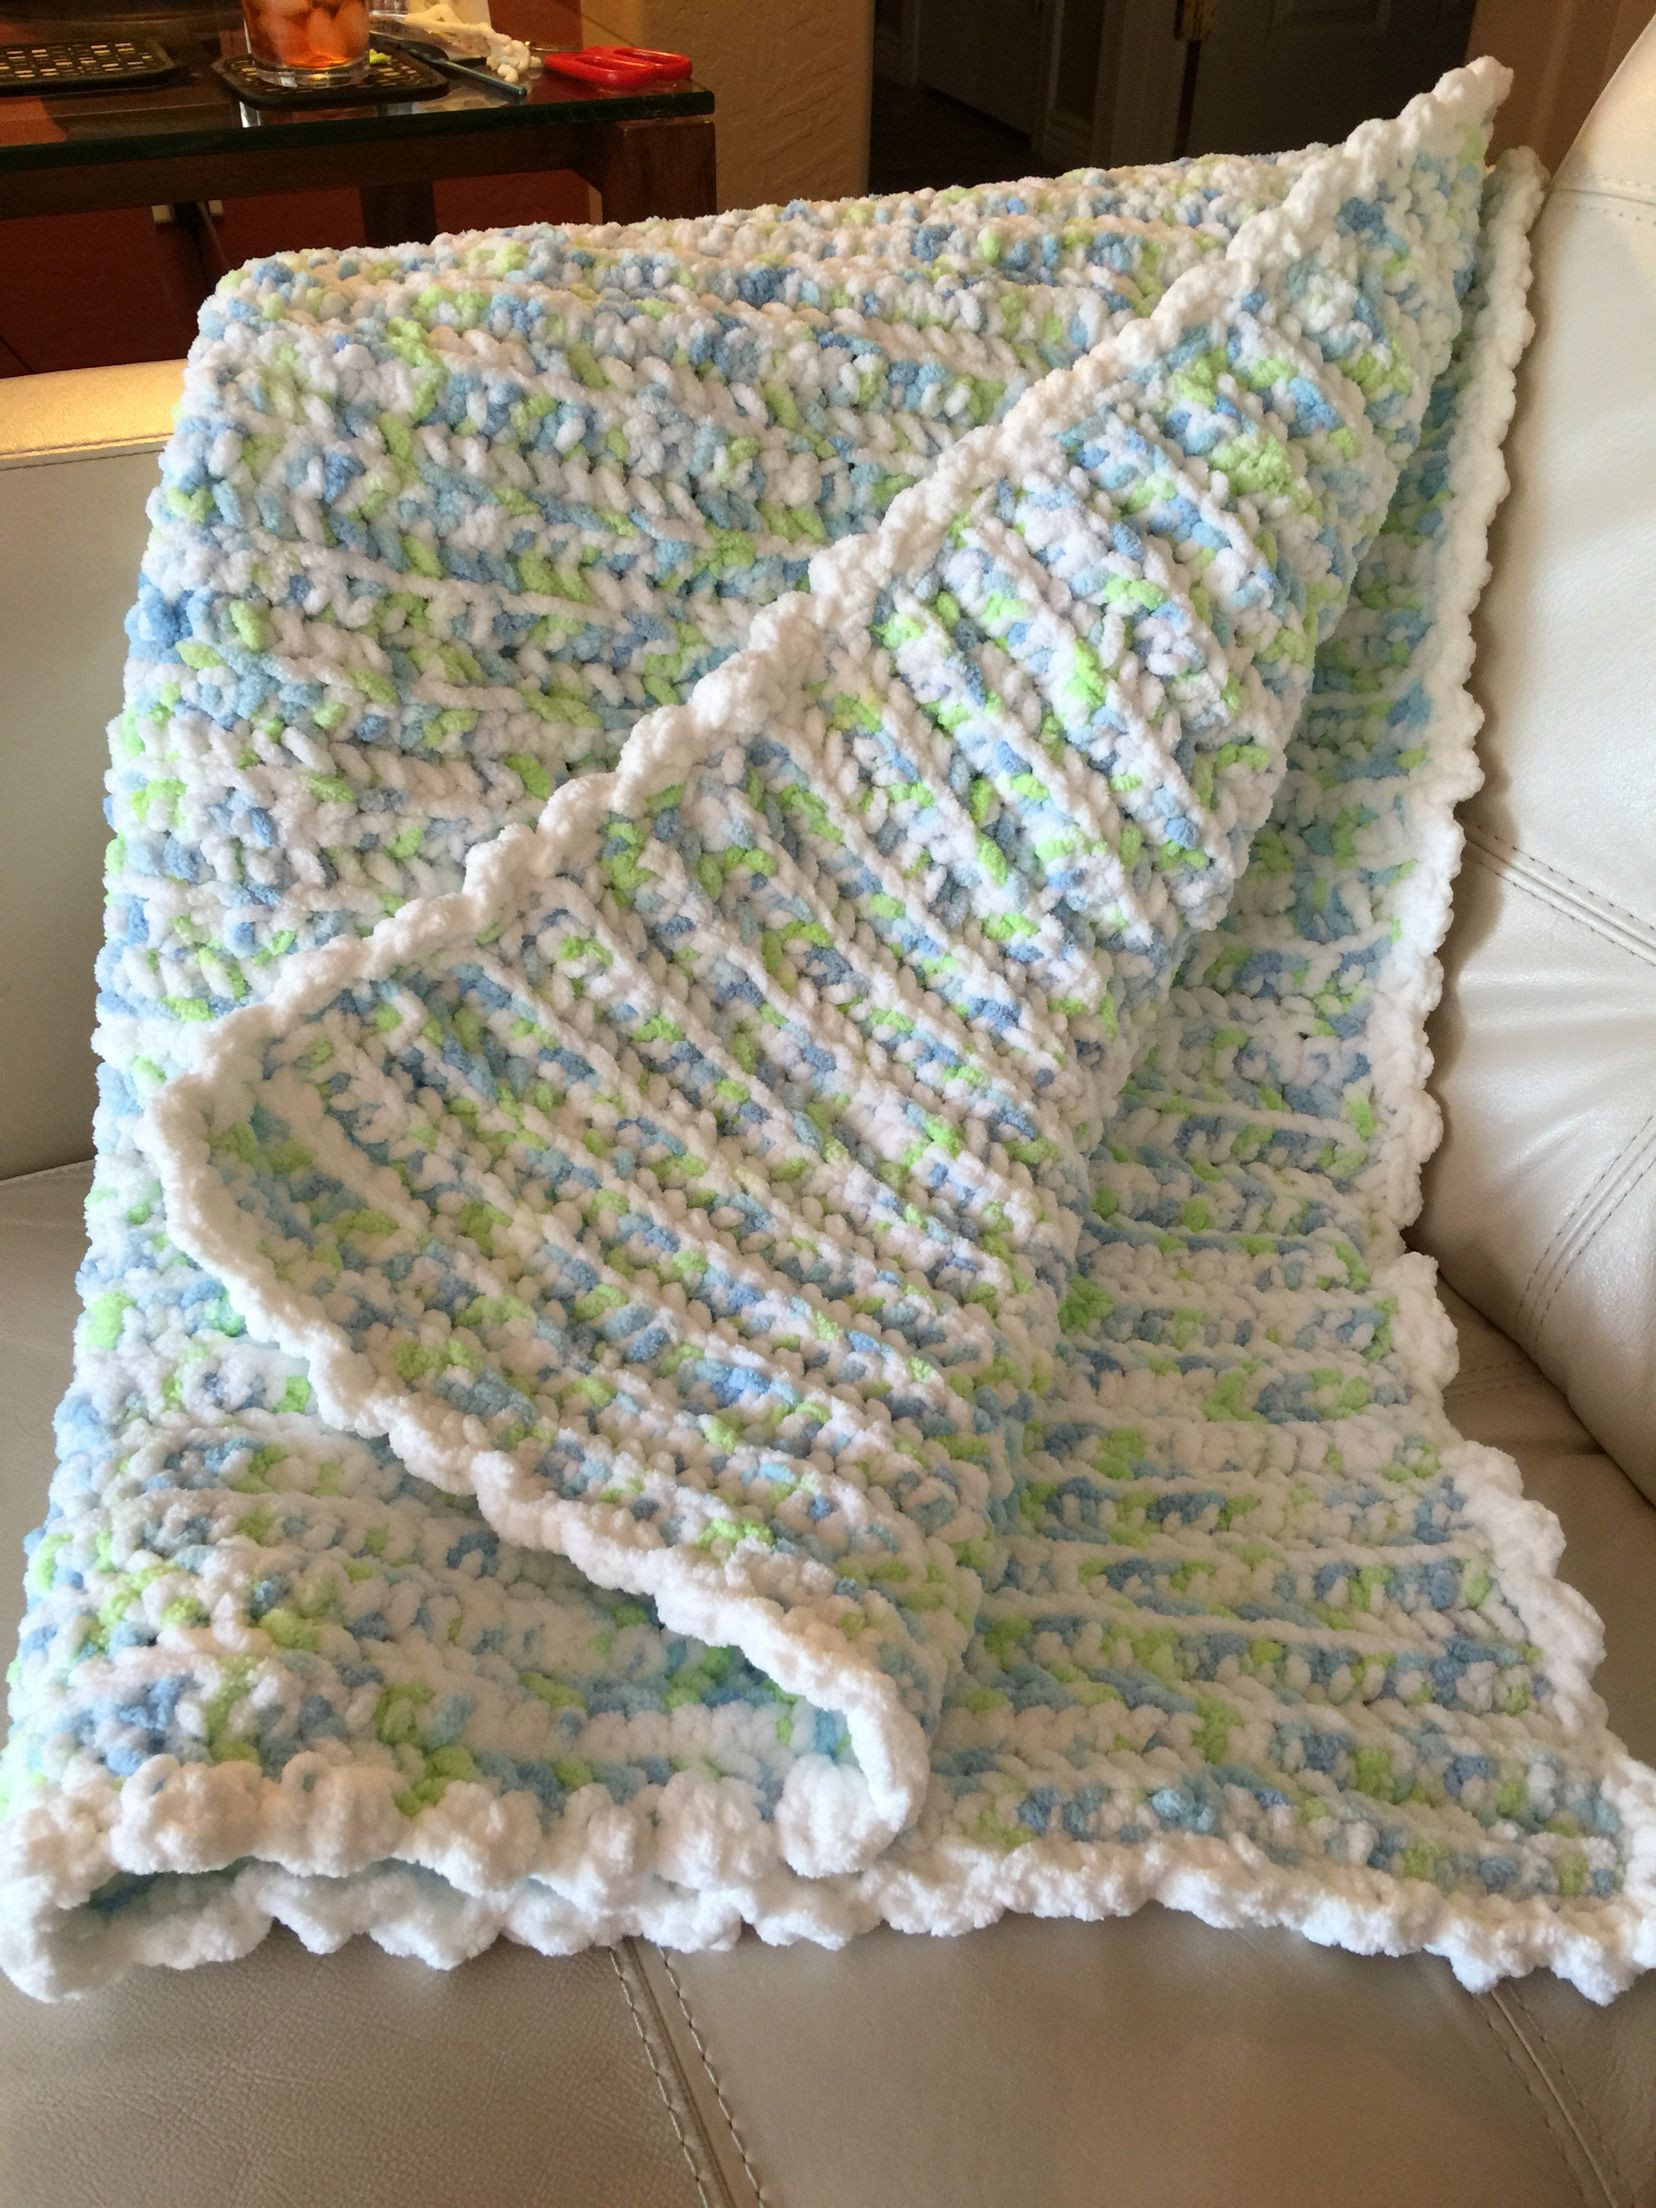 Yarn for Crochet Blanket Inspirational Crocheted Baby Quilt with Bernat Baby Blanket Yarn Of Amazing 41 Photos Yarn for Crochet Blanket